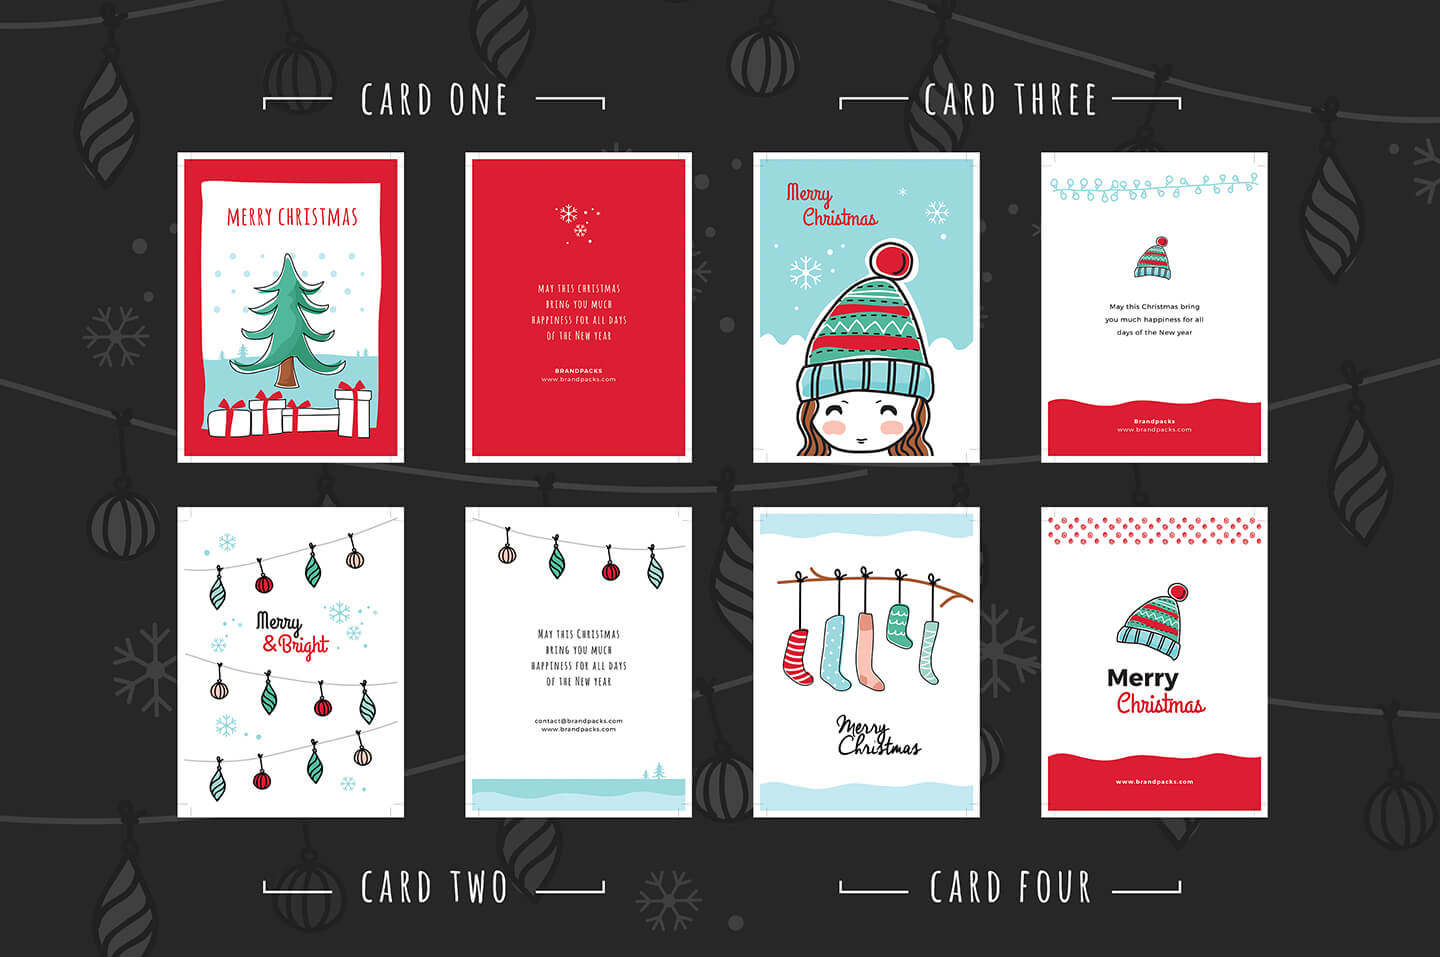 Free Christmas Card Templates For Photoshop & Illustrator Throughout Adobe Illustrator Christmas Card Template